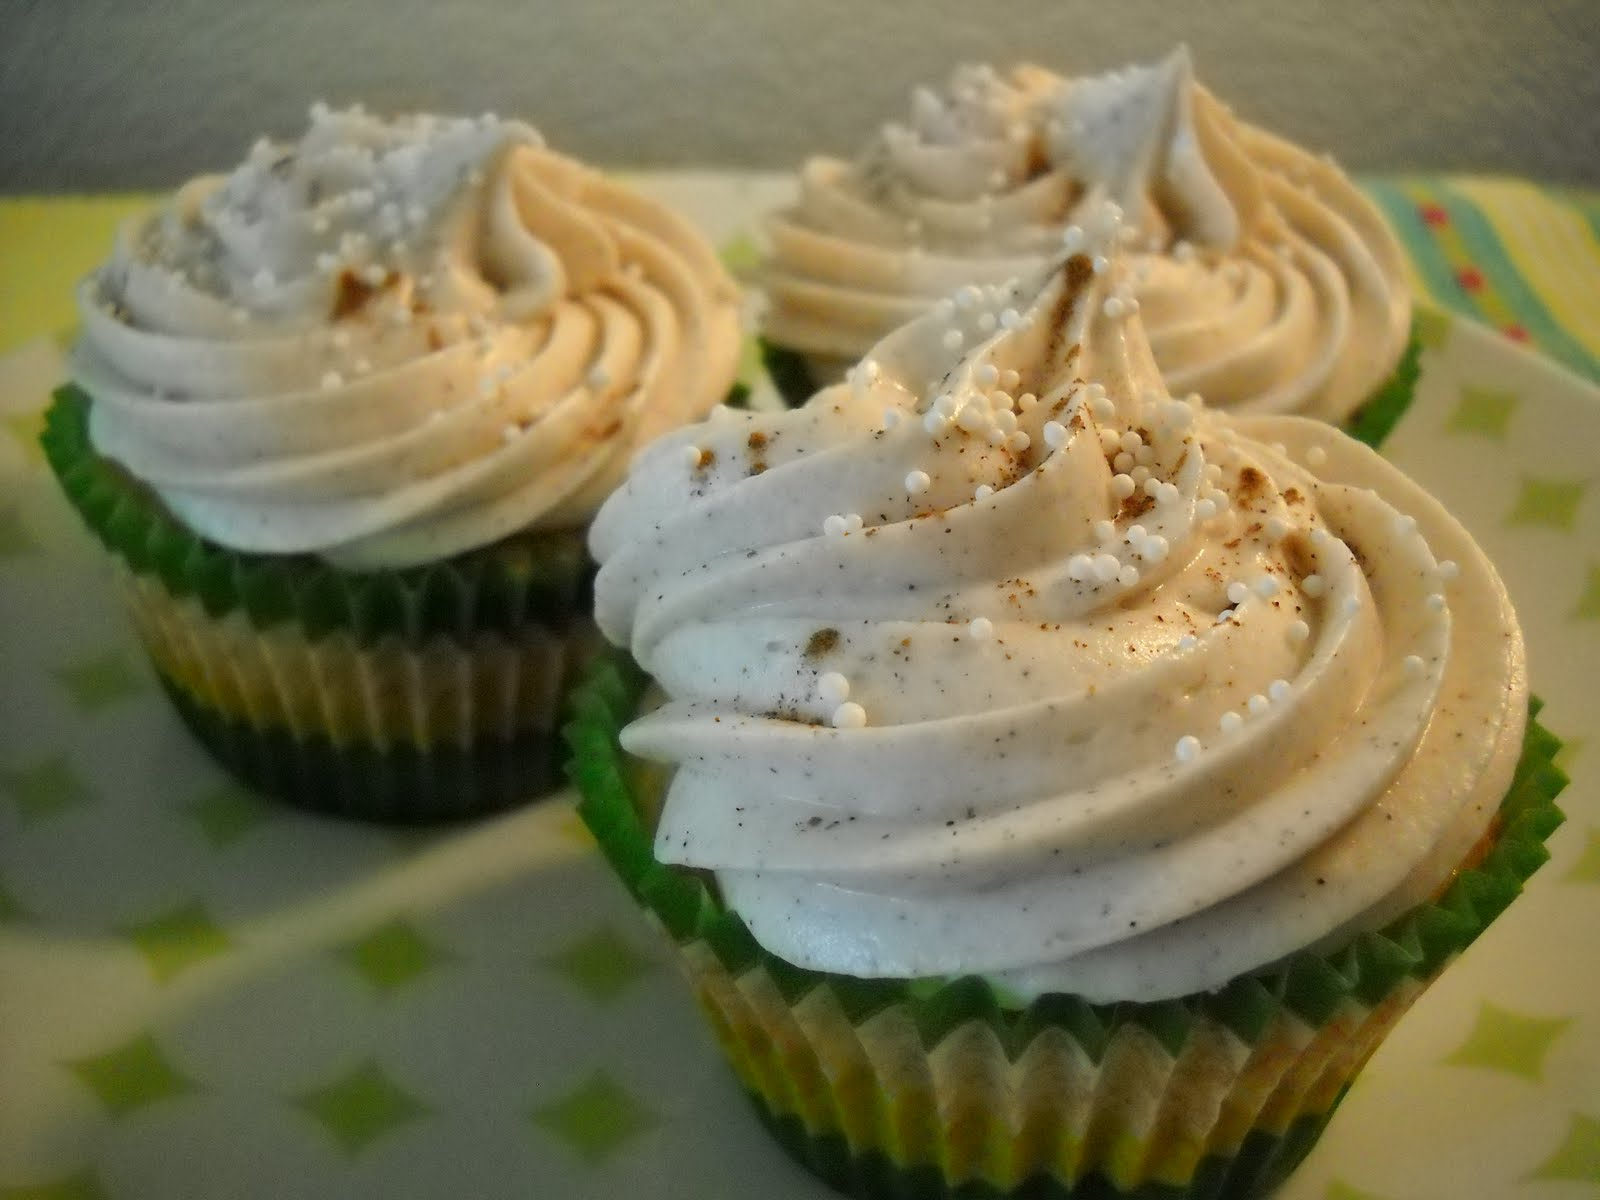 Booze!: BIWB goes Gluten-Free: Rum-Infused Apple and Quinoa Cupcakes ...